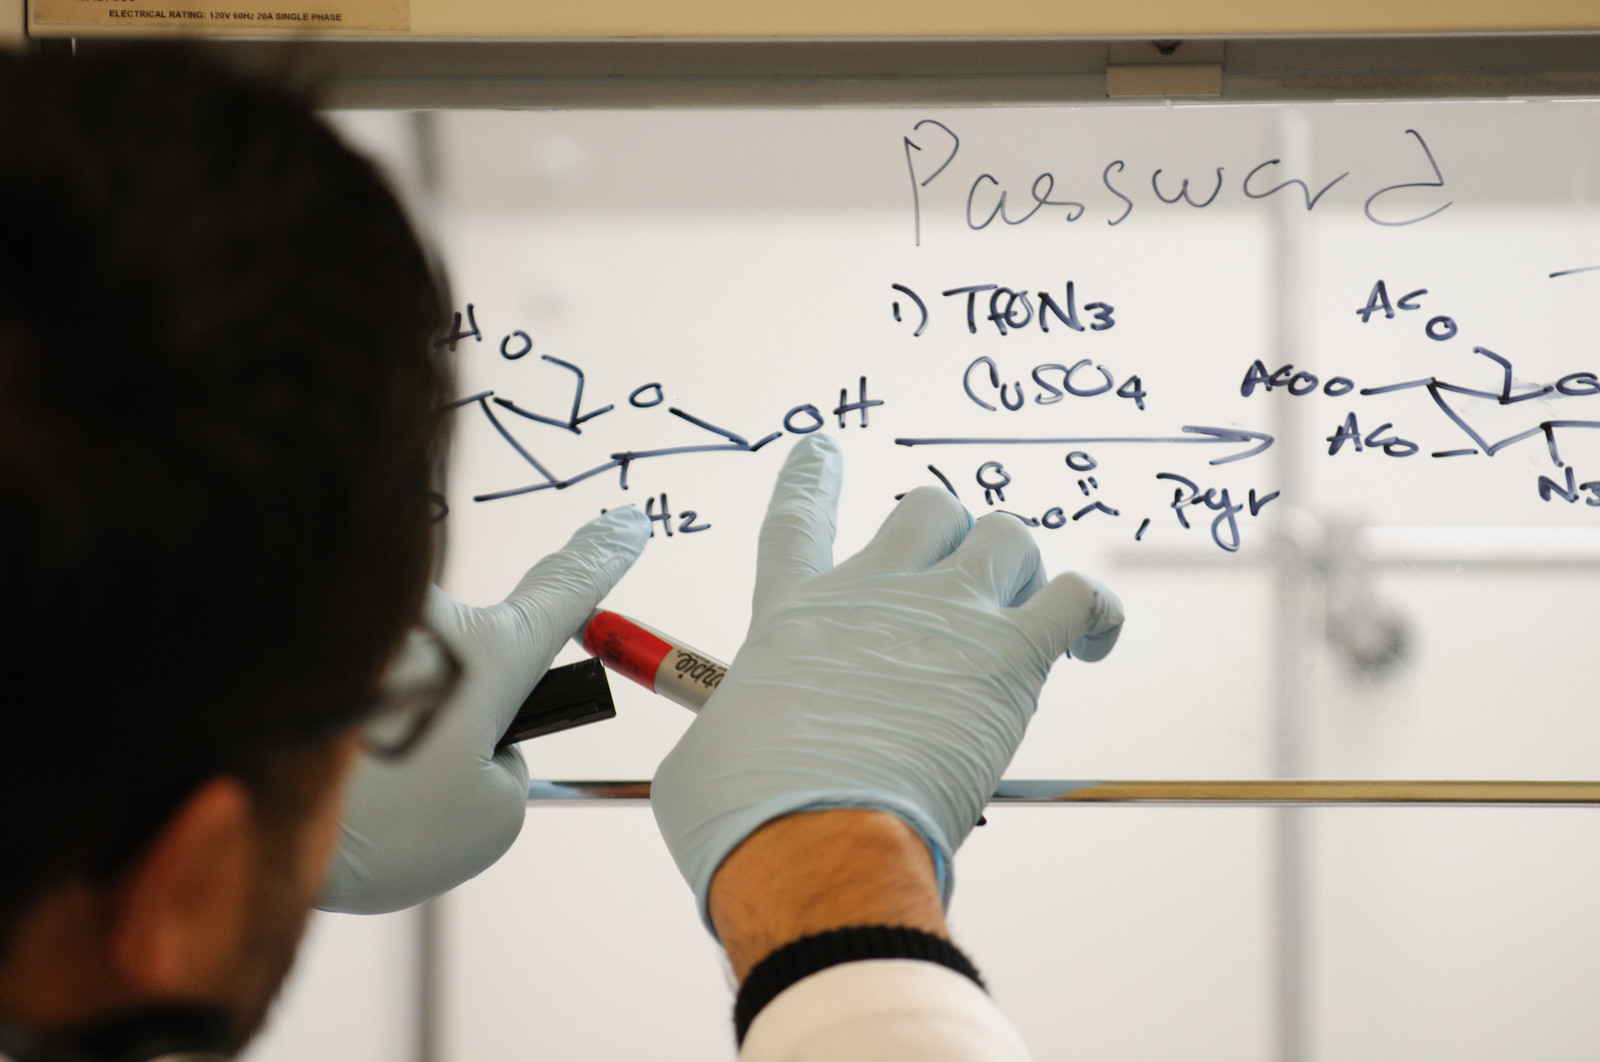 Chemical compounds written on a whiteboard